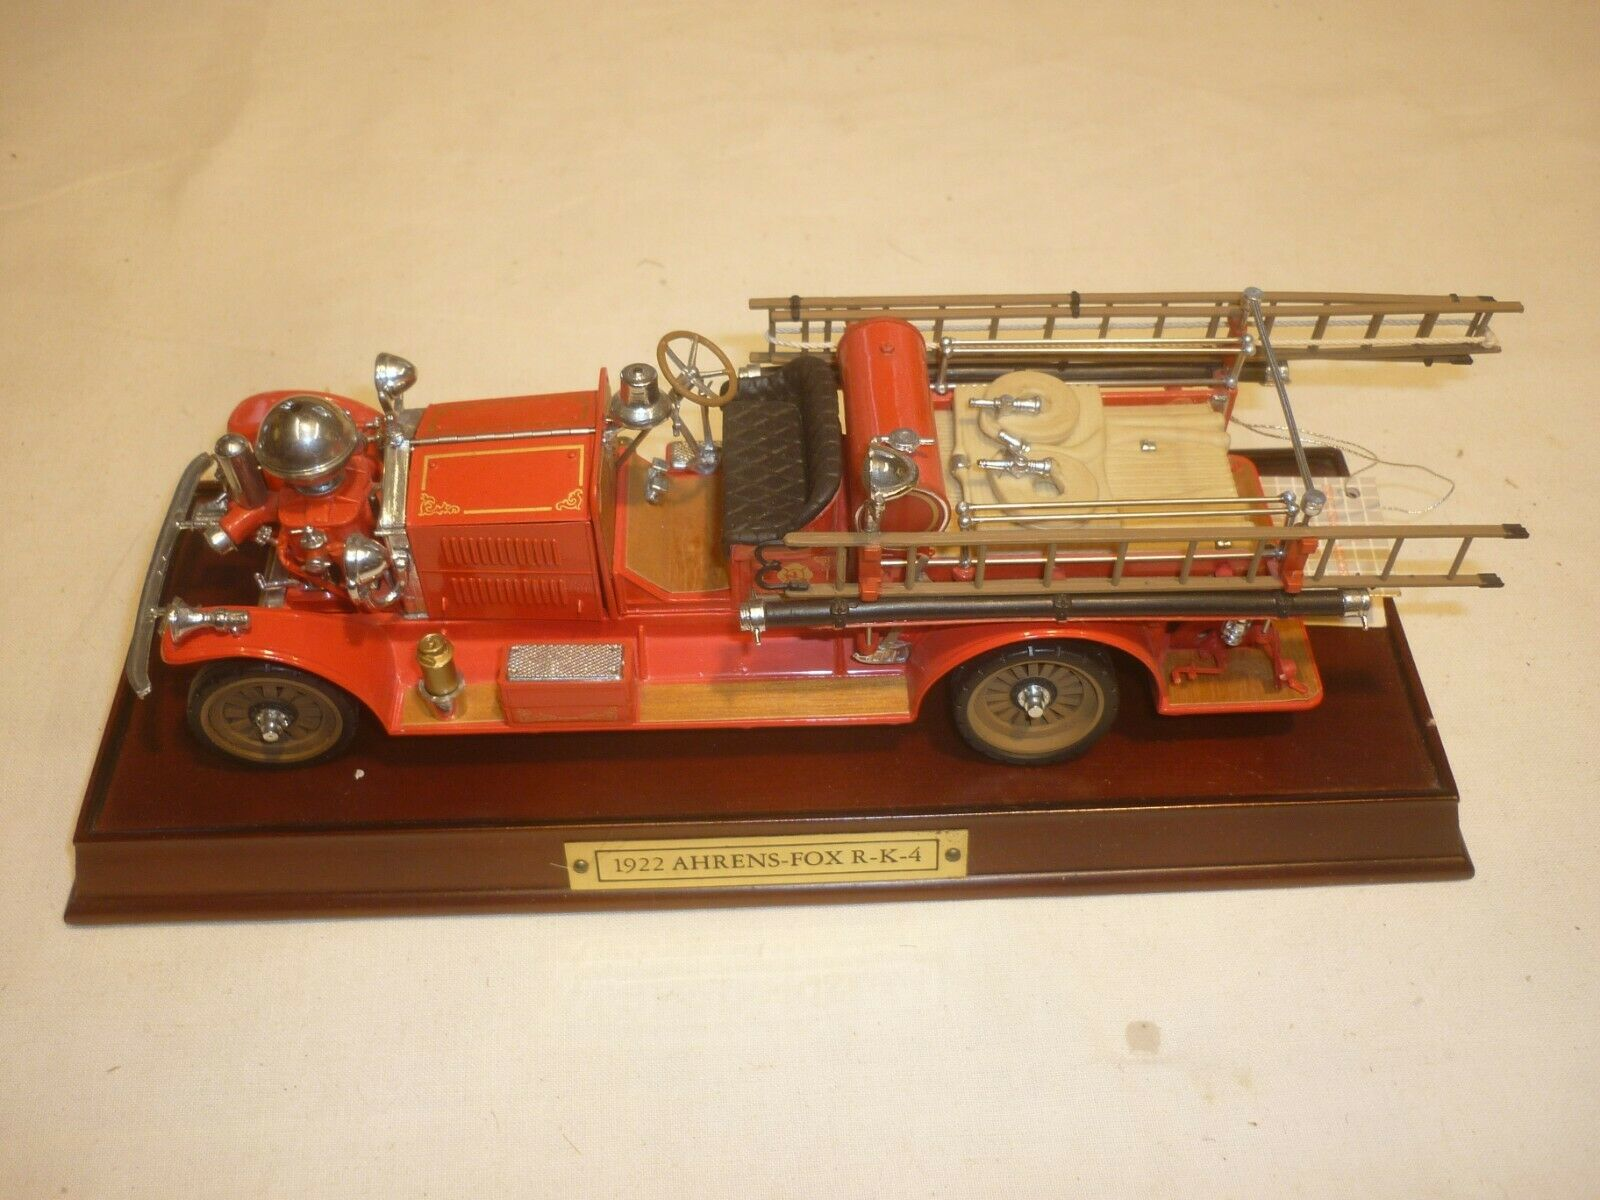 A Franklin mint of a scale model of a 1922 Ahrens Fire engine on wooden base